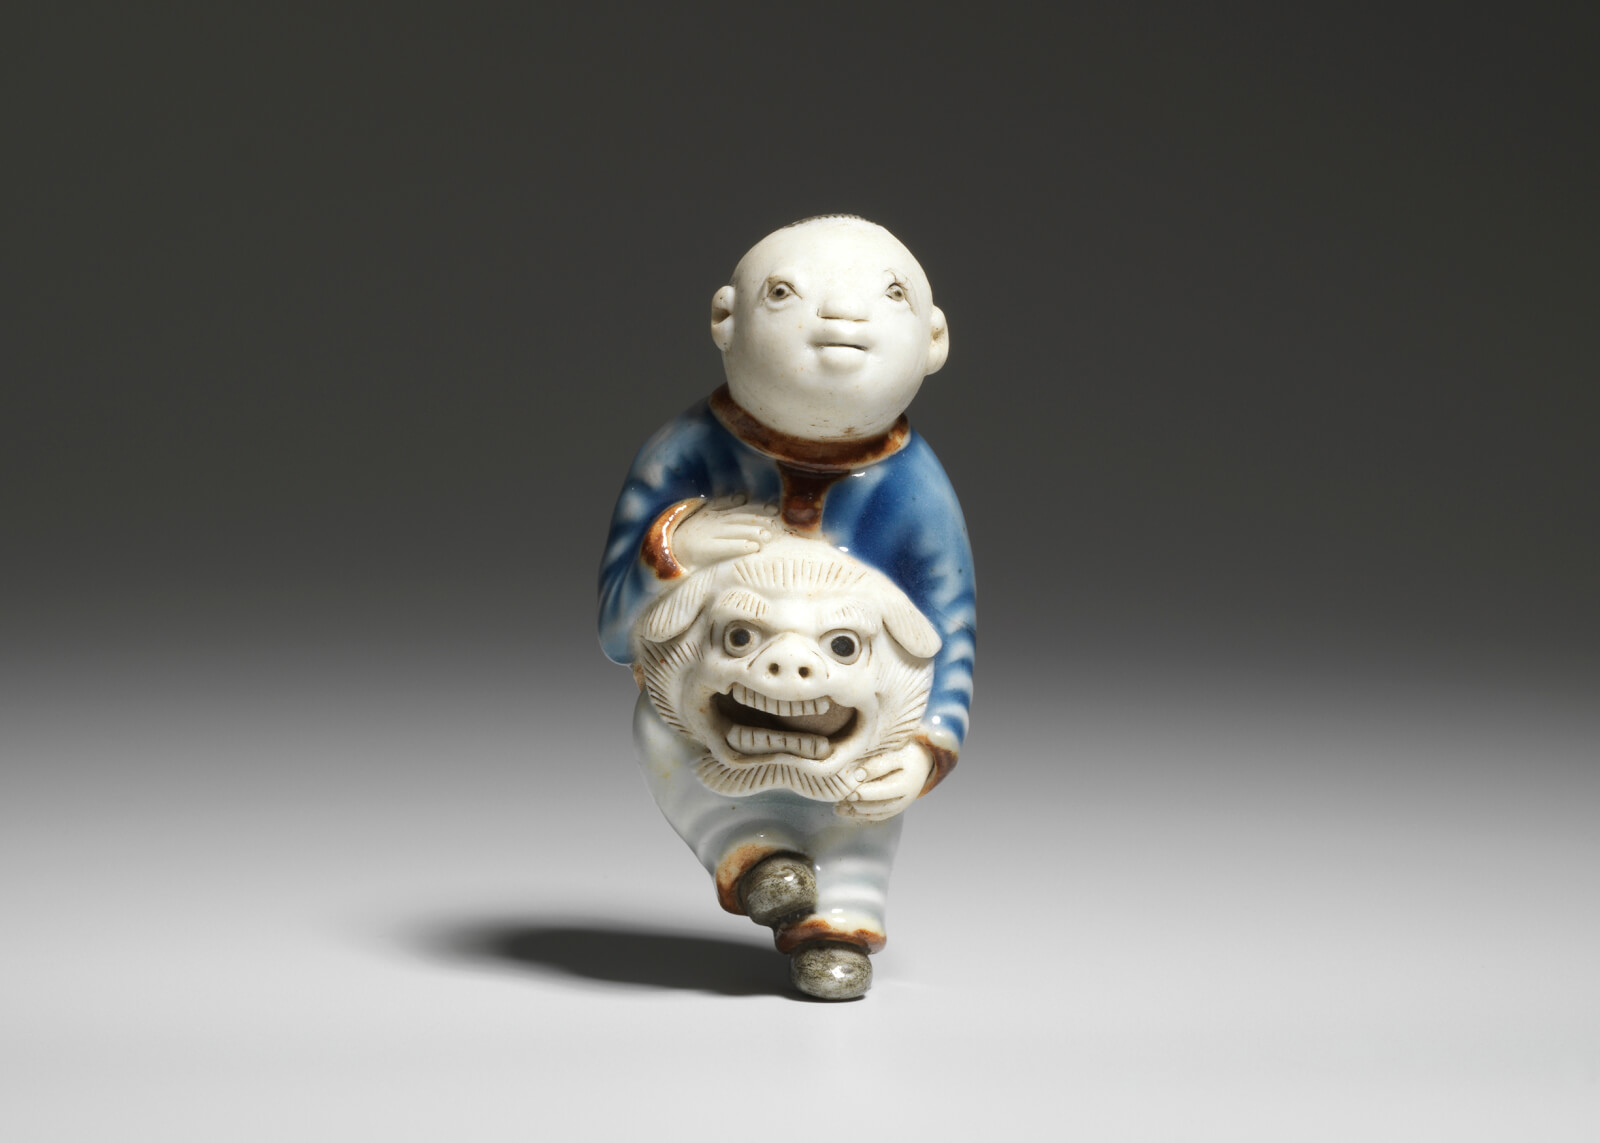 event image for Dressed to impress: Netsuke and Japanese Men's Fashion